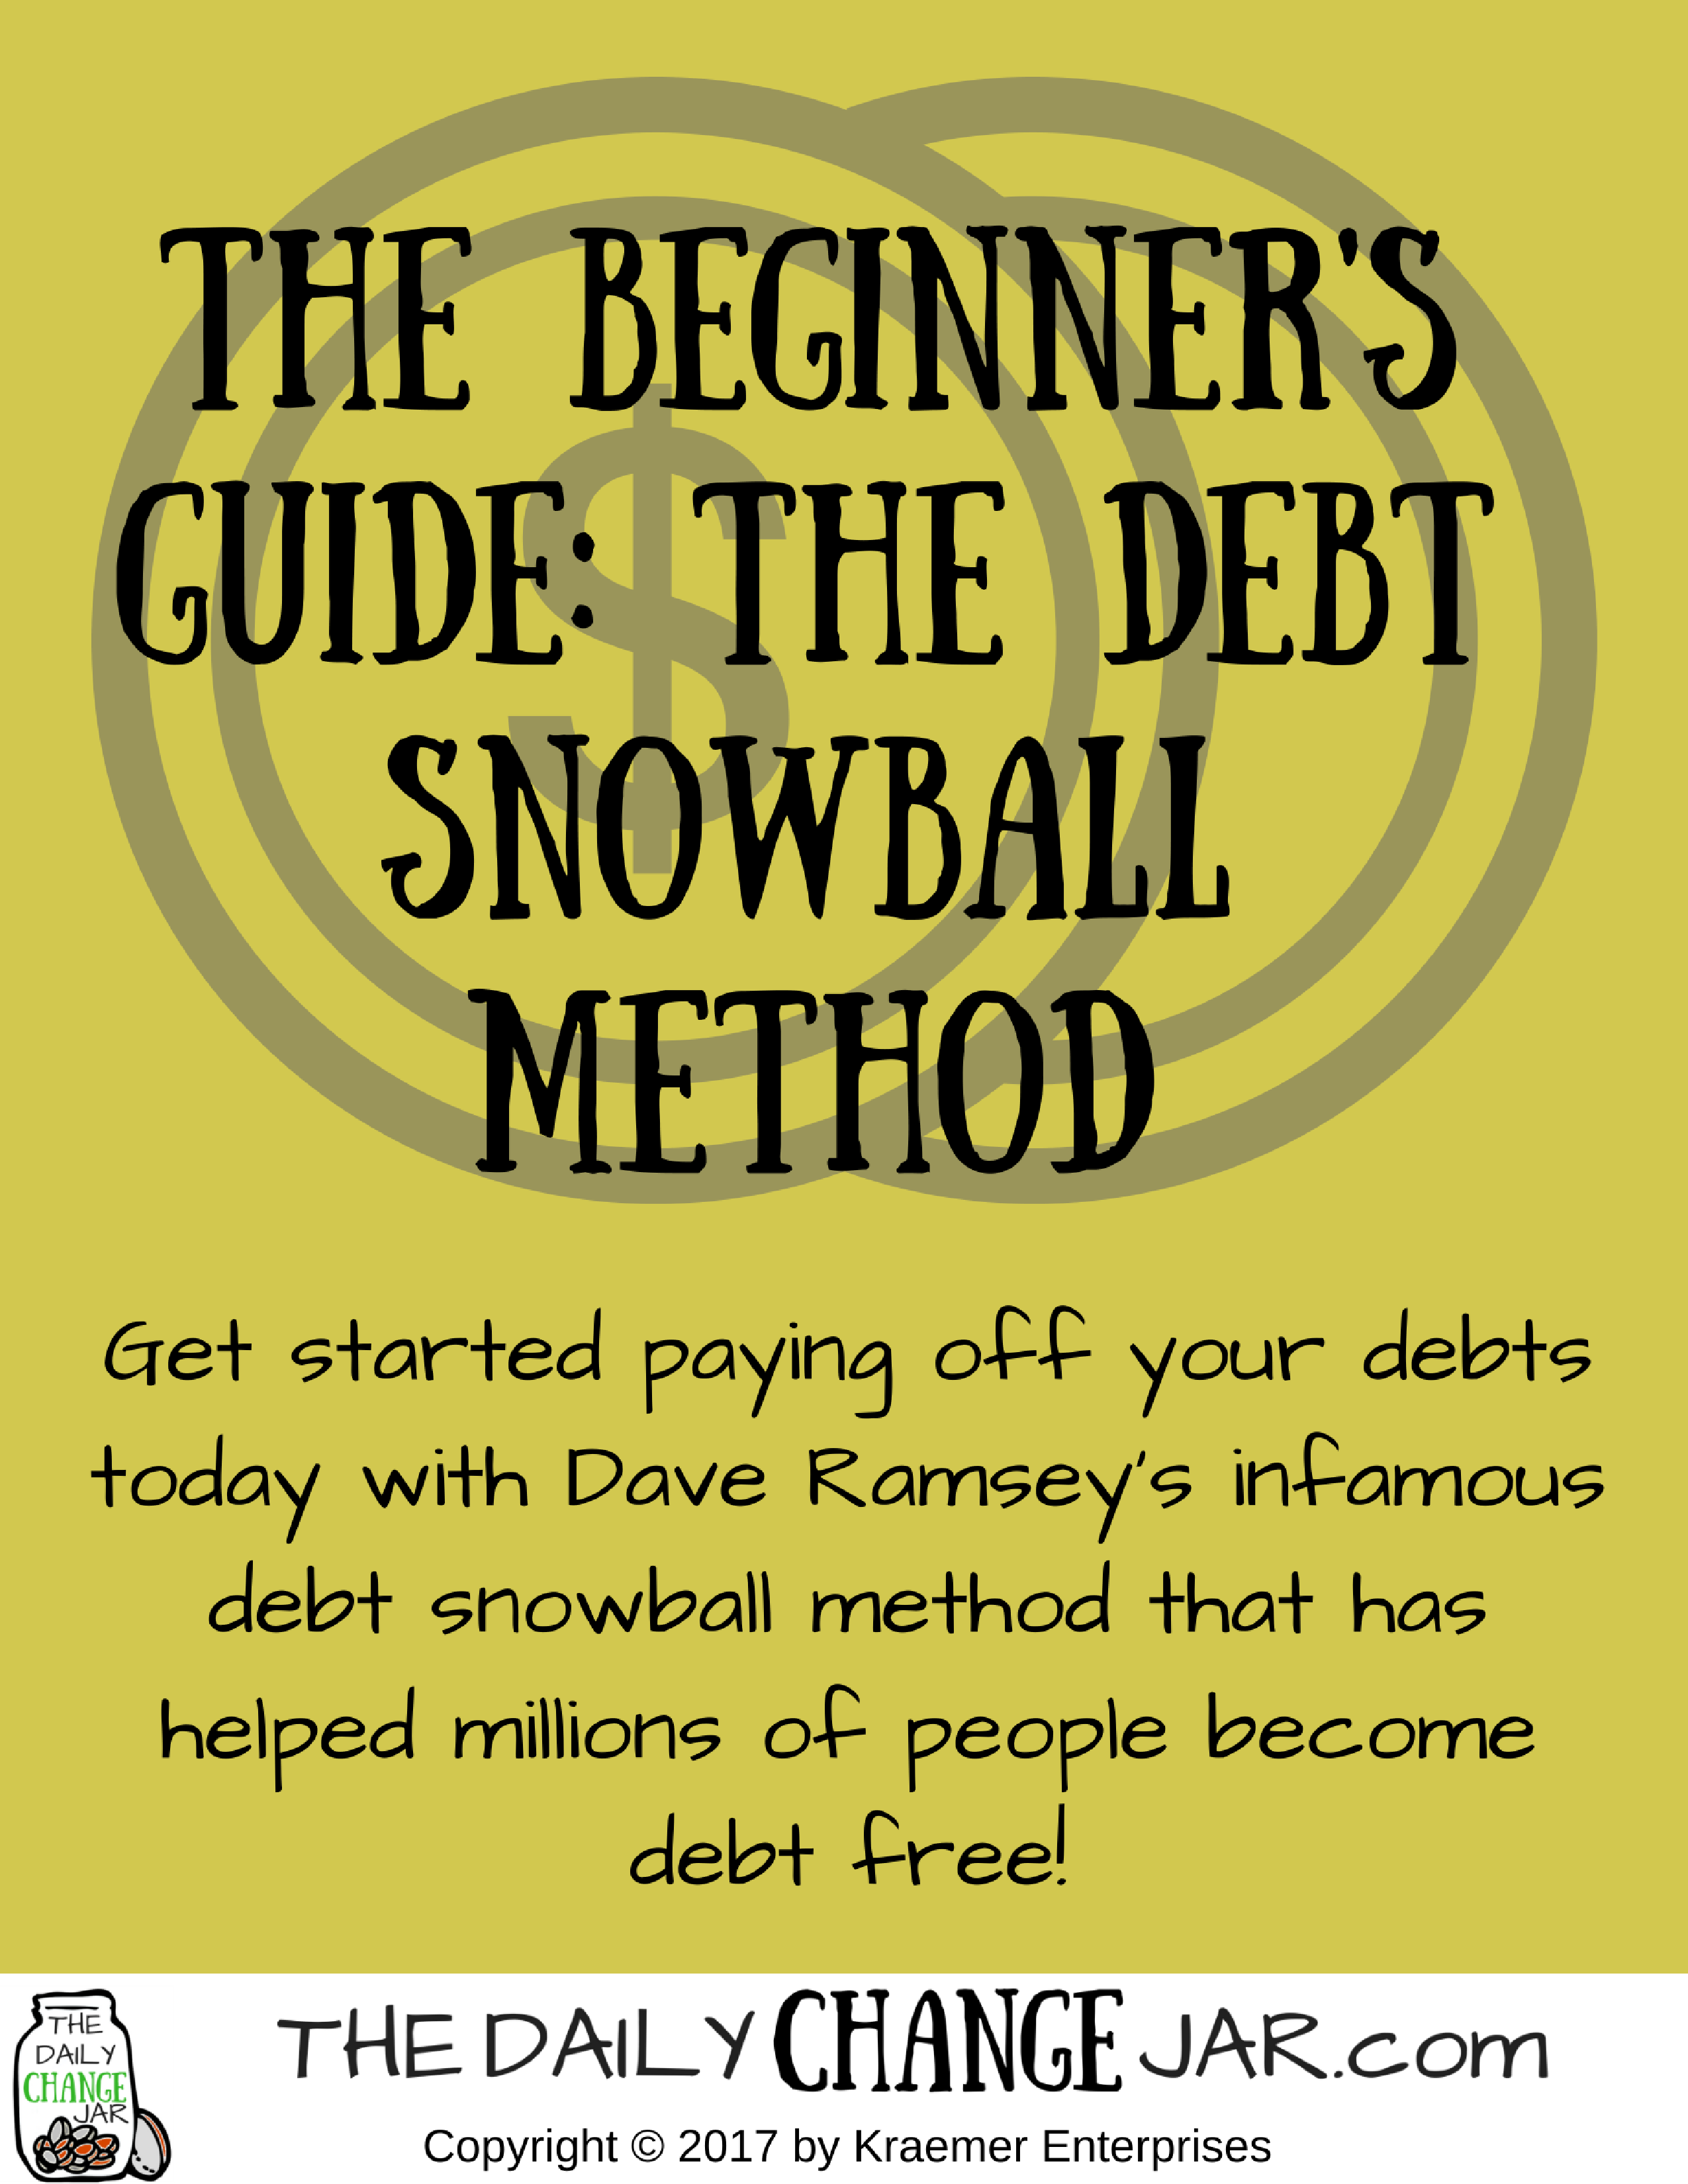 Have you tried to pay off your debt and failed? This probably happened because you didn't have a clear cut plan in place. Click the image to find out how using the debt snowball method can help you pay off debt faster and easier! 401k | betterment | budget | debt | fidelity | financial independence | index funds | investing | ira | mortgage | personal capital | personal finance | real estate investing | retirement | roth ira | saving | side hustle | stock investing | student loans | vanguard | wealthfront | jobs | career | credit | bankruptcy